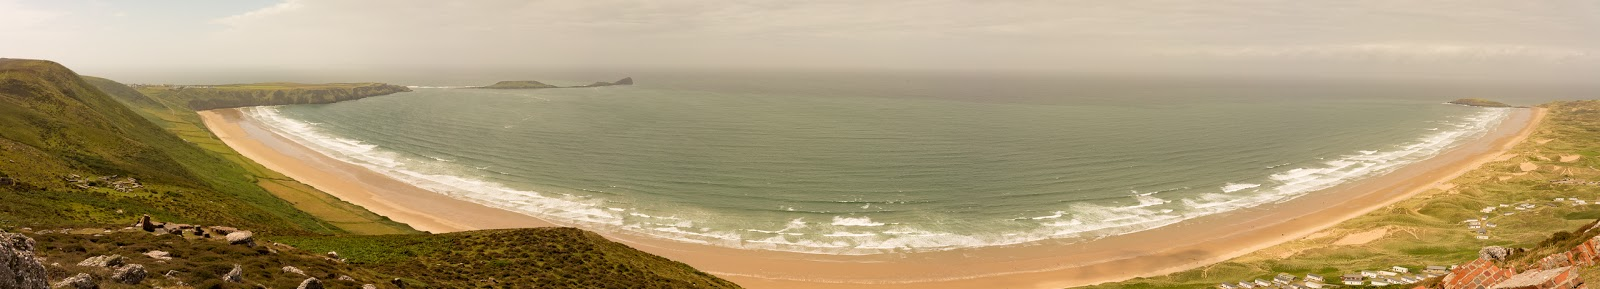 Gower2 (6 of 17).jpg